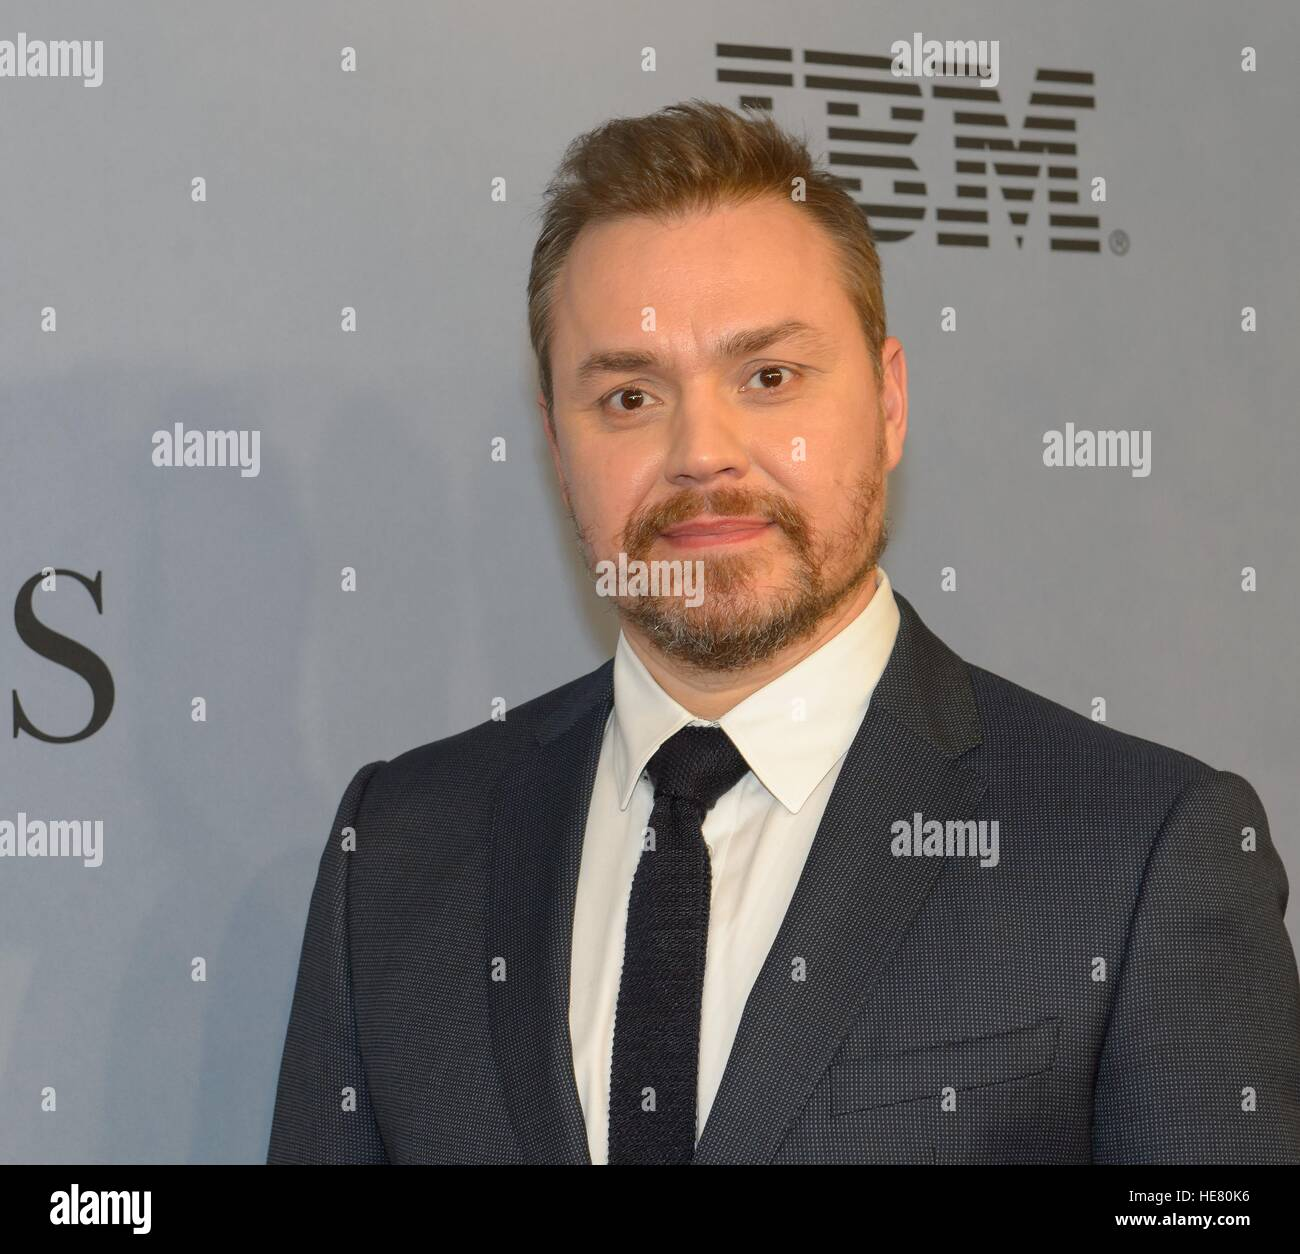 Director Theodore Melfi walks the red carpet during the global celebration event for the film Hidden Figures at - Stock Image